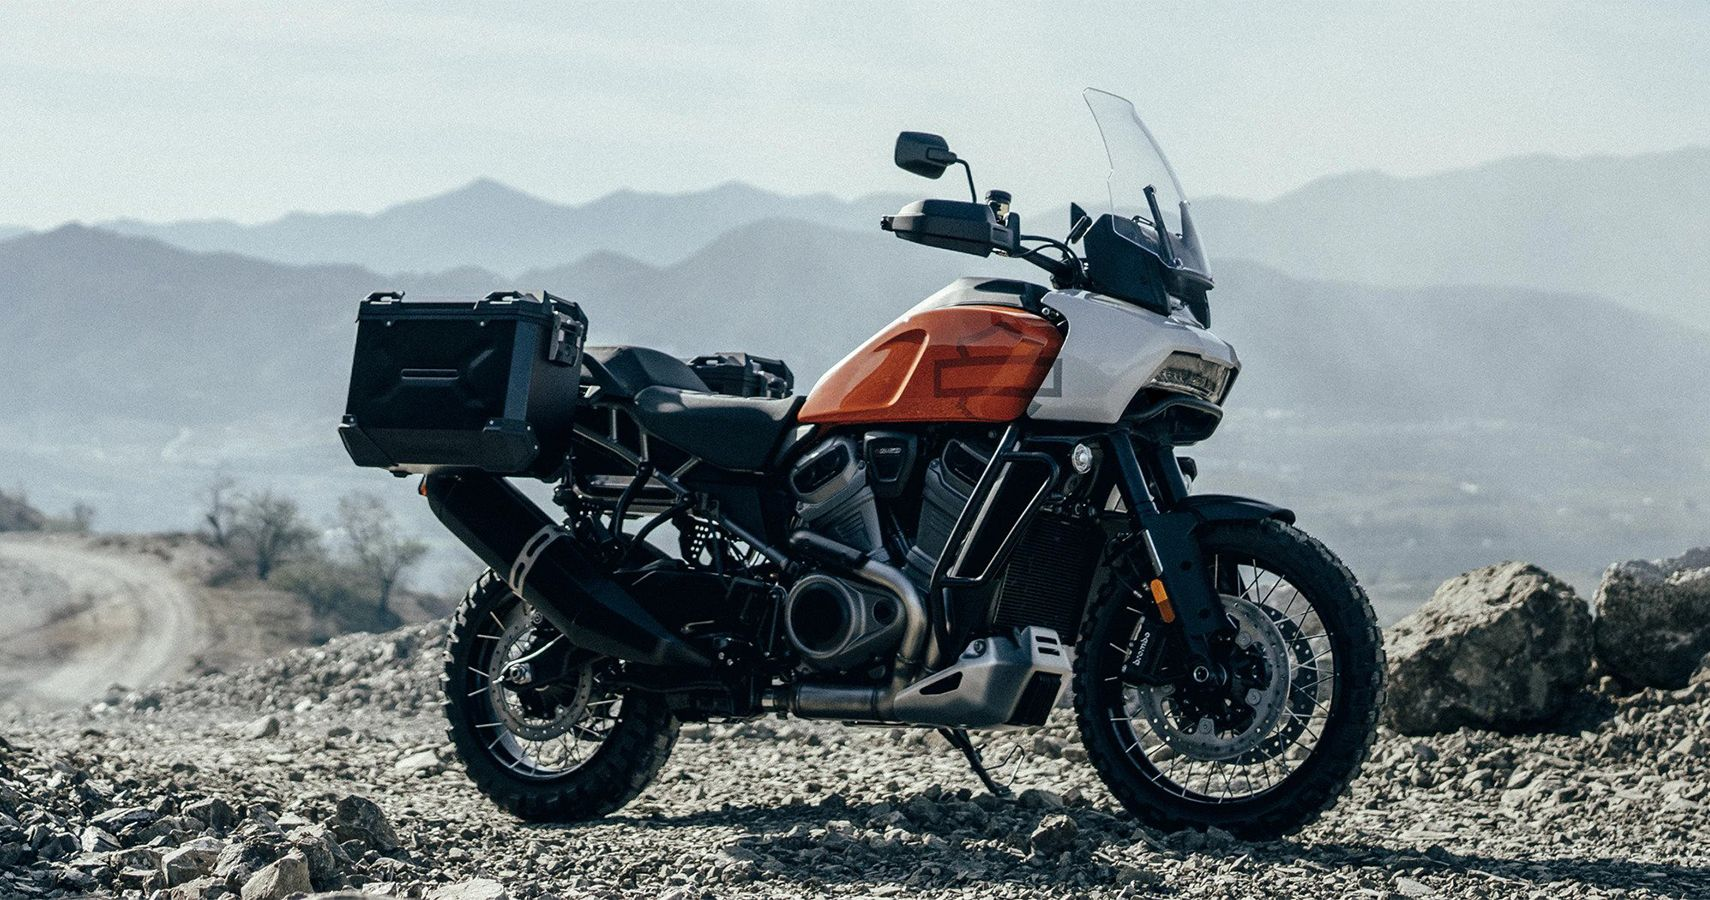 Here's Why The Harley-Davidson Pan America Is Selling Like Hot Cakes